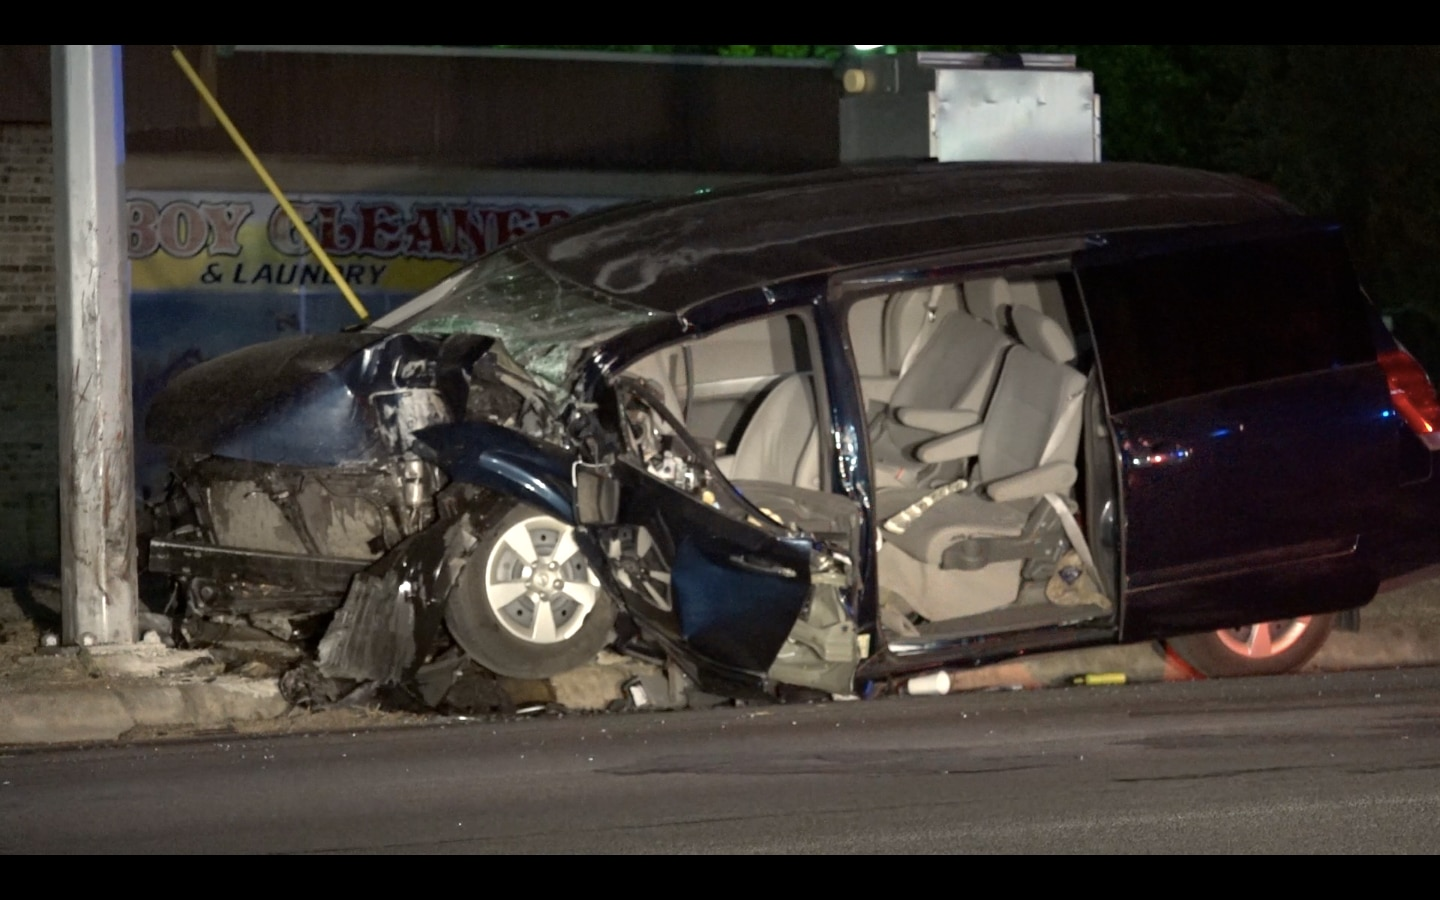 A minivan was left crumpled after it hit a utility pole Tuesday morning in Fort Worth. Two occupants were expected to survive their injuries, police said,